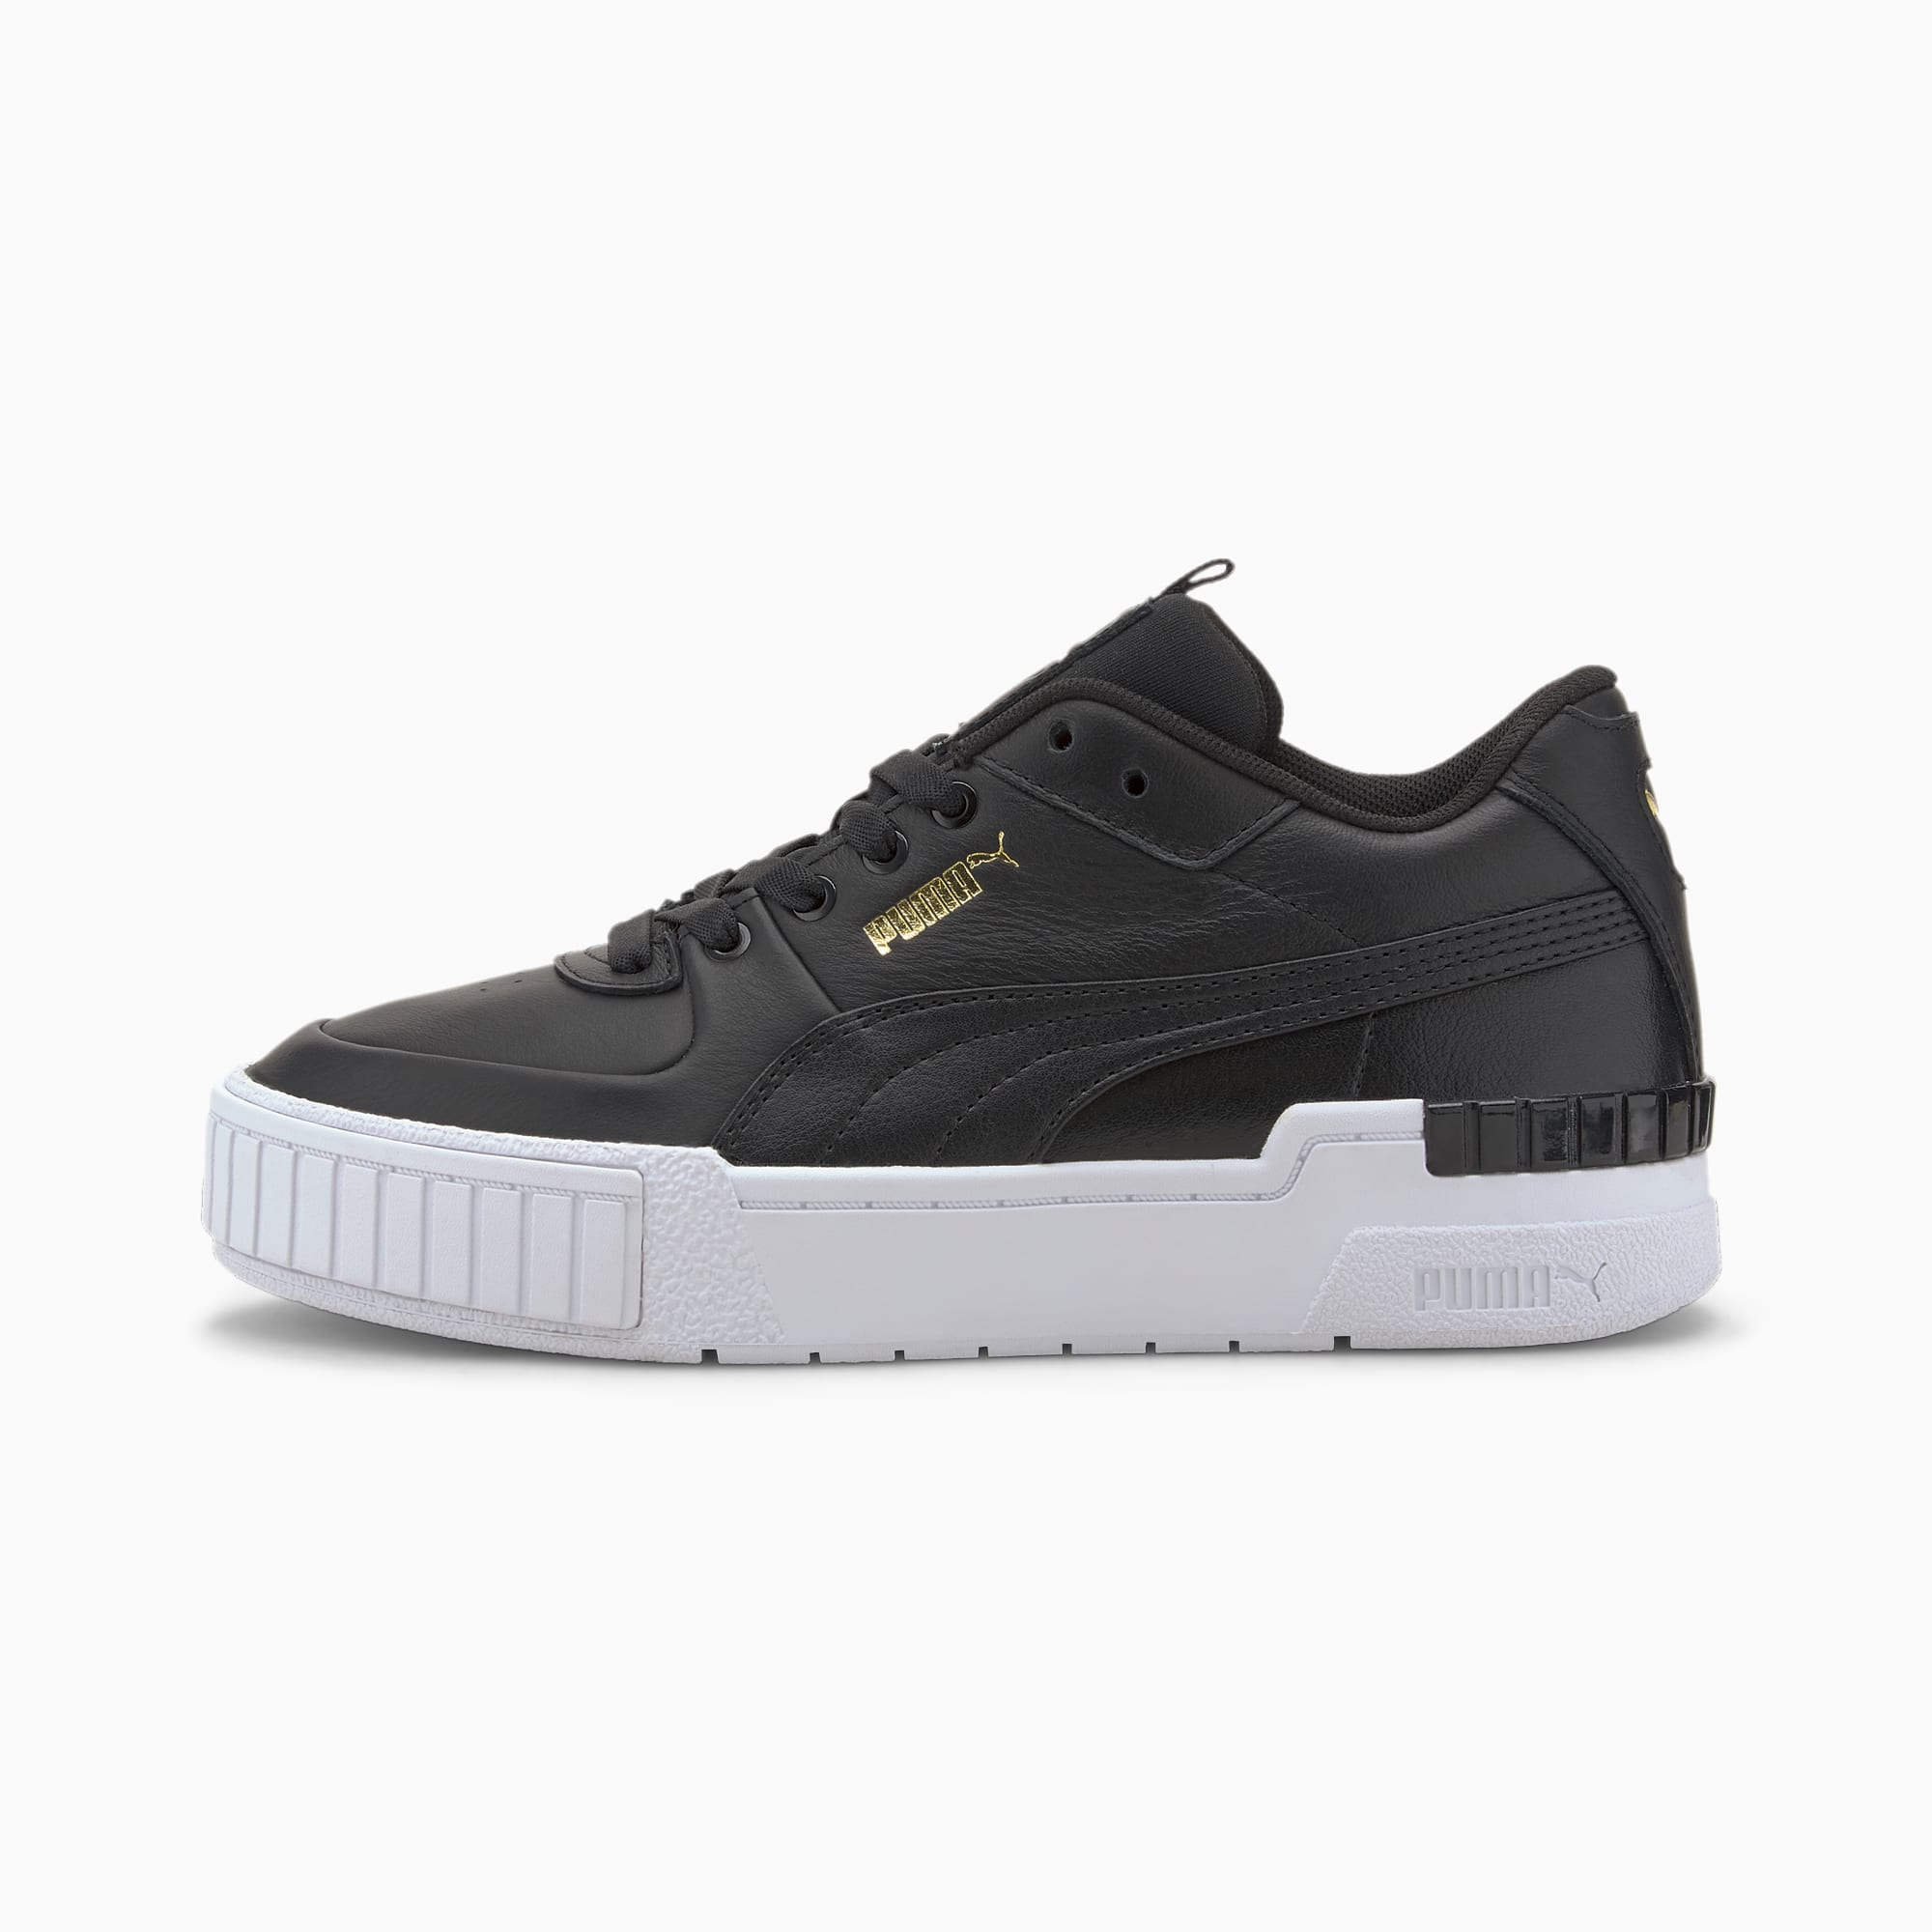 Escalofriante intervalo Relacionado  puma cali trainers black and white - 50% OFF - ser.com.bo